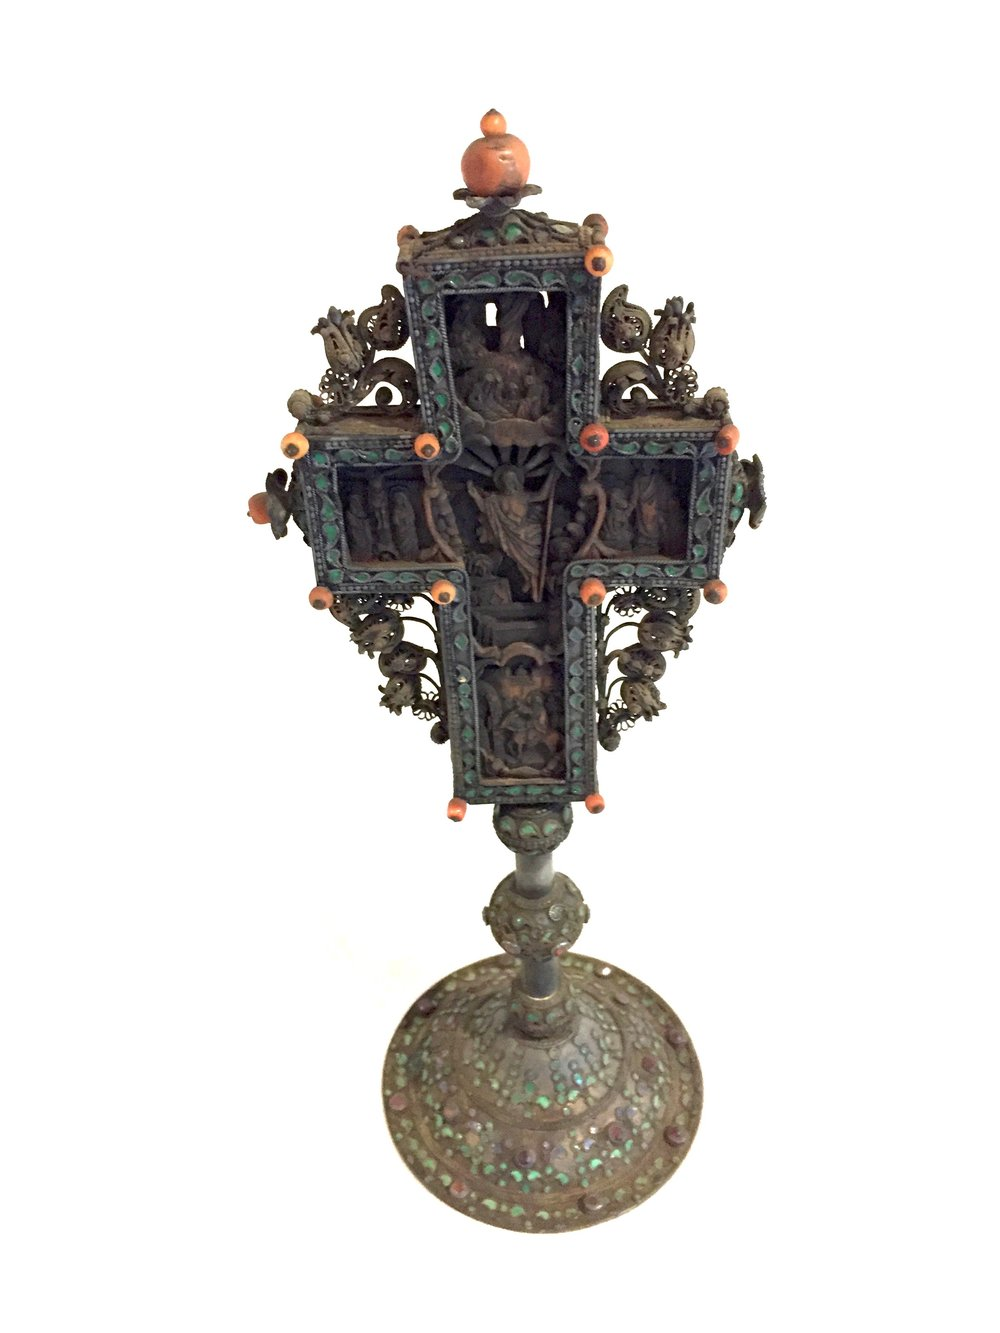 This 18th century Greek altar cross is not listed for sale in the shop, but we are accepting inquiries from interested parties. We can put your name on an email list to contact when this item goes to auction. Email: provincejournal@gmail.com